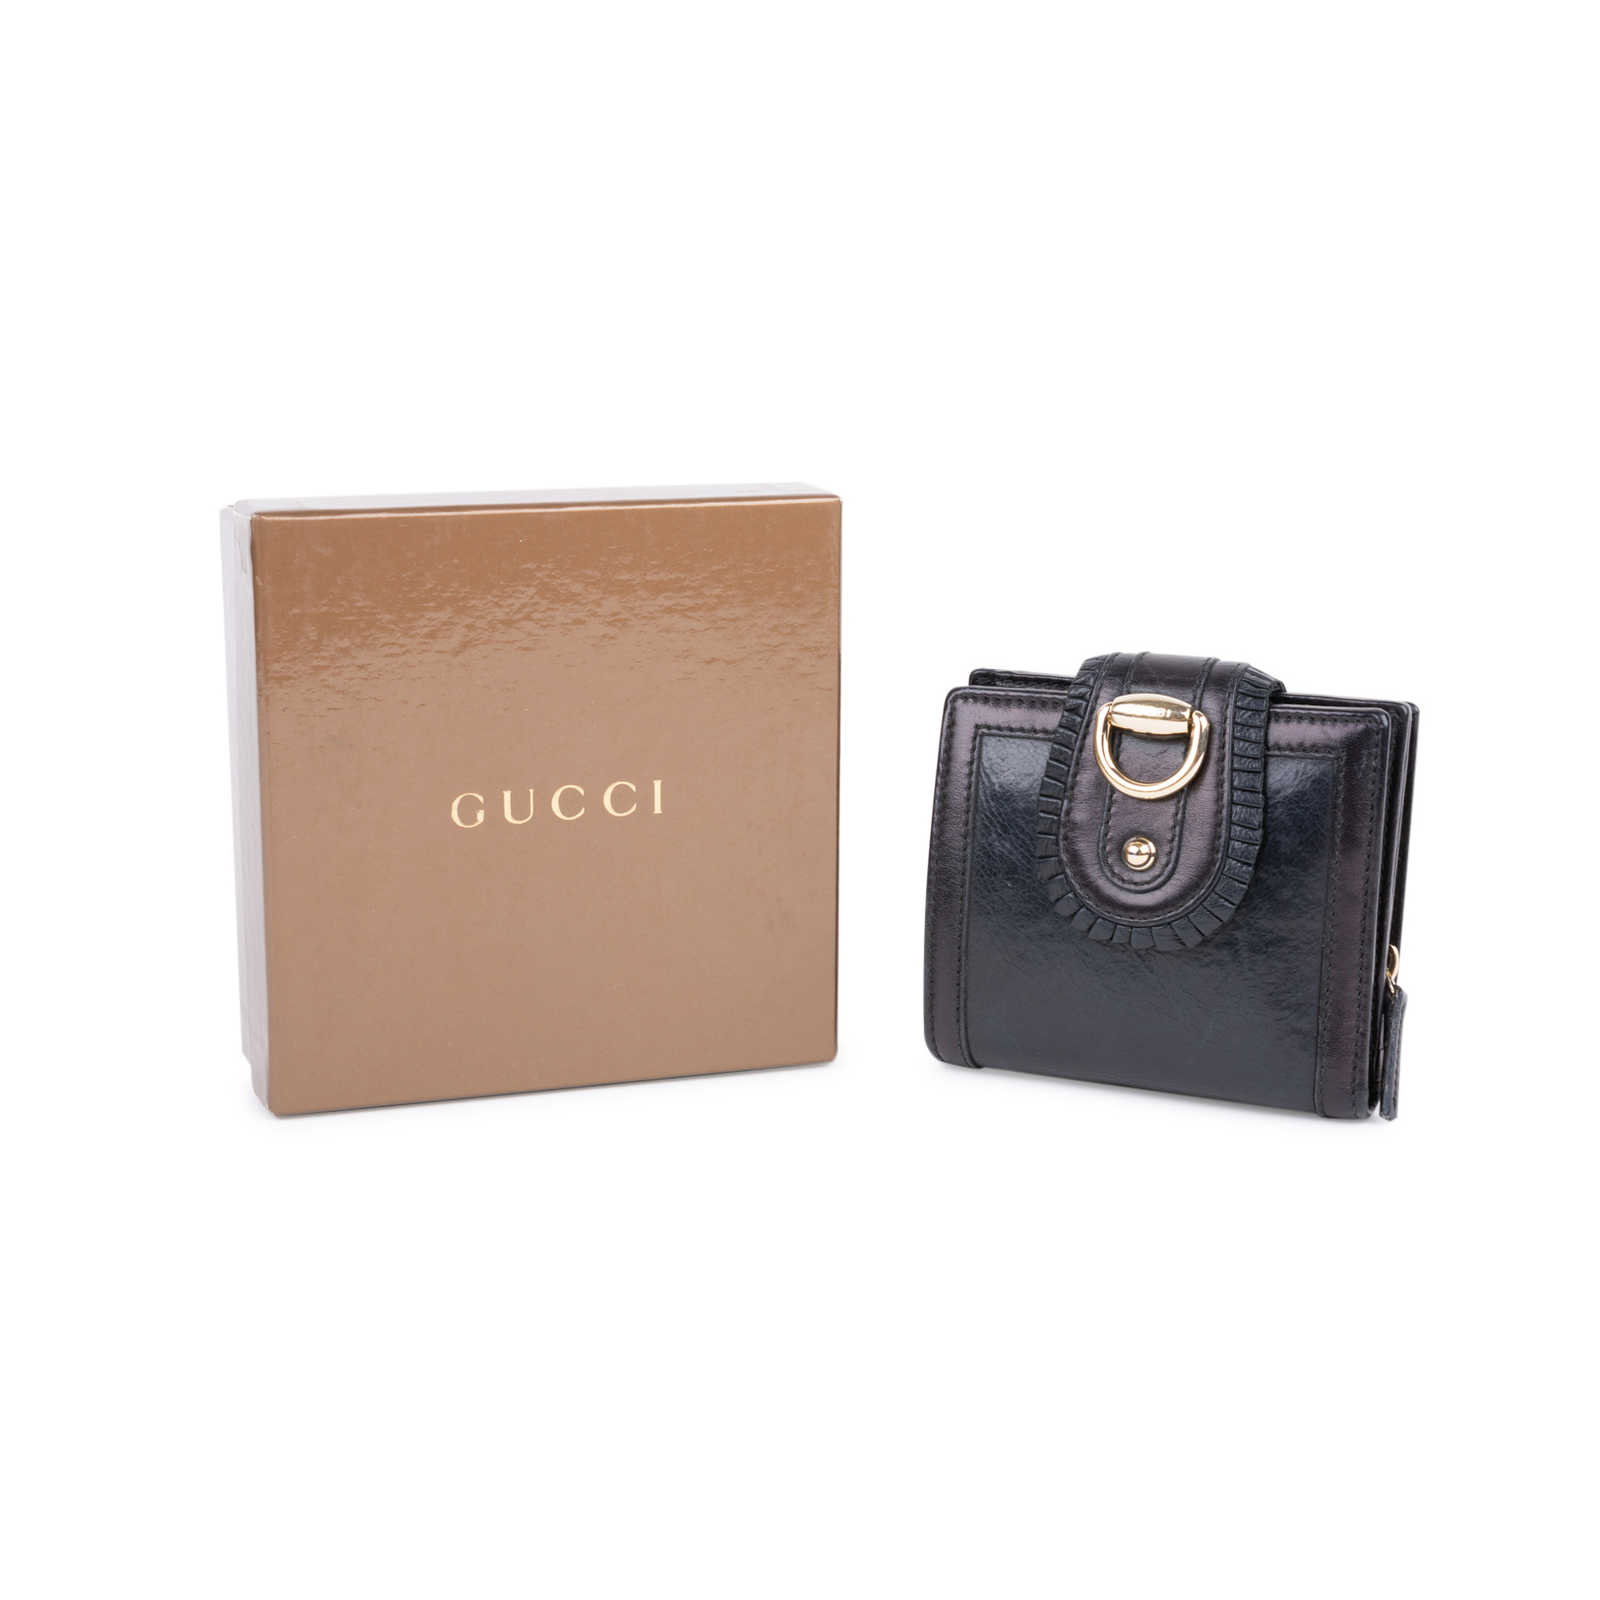 79f2137a039 ... Authentic Second Hand Gucci D-Ring Leather Wallet (PSS-591-00002)